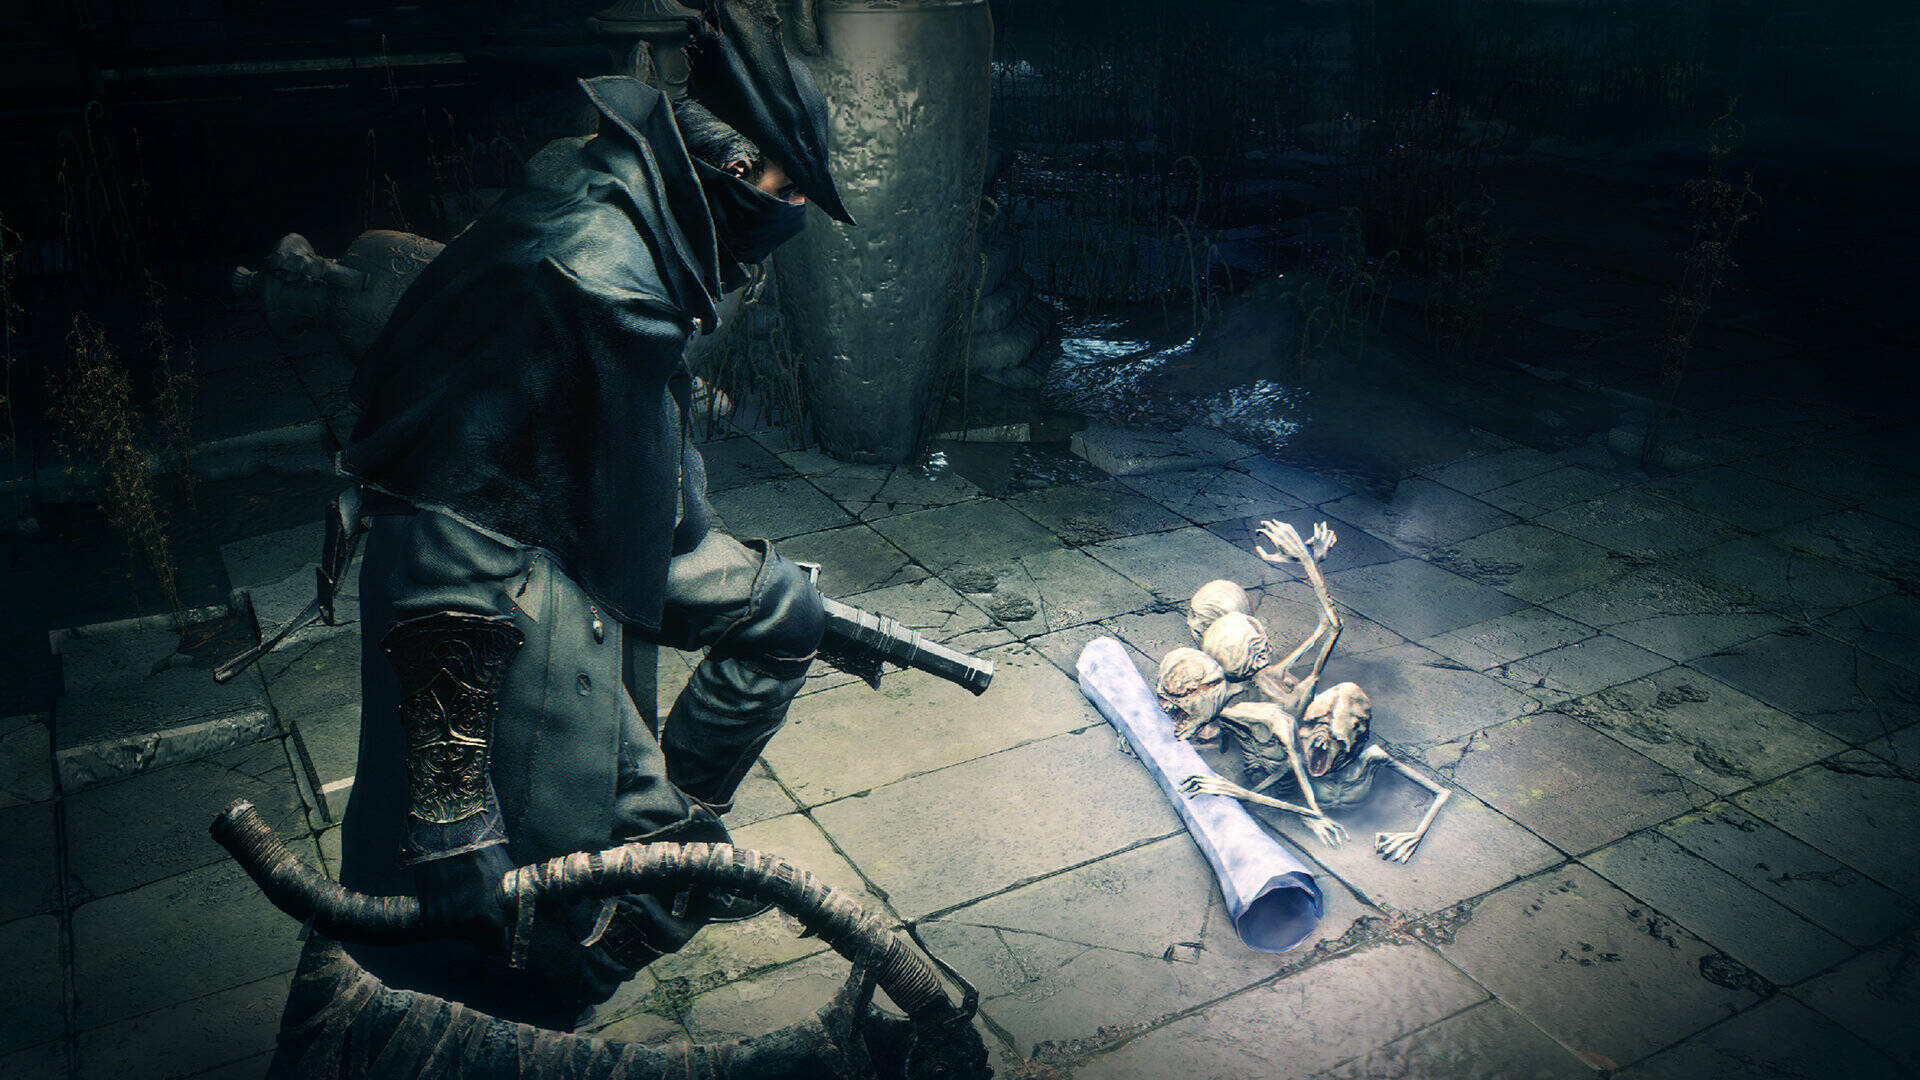 Bloodborne PSX is (really) taking shape, and is playable in multiplayer as well